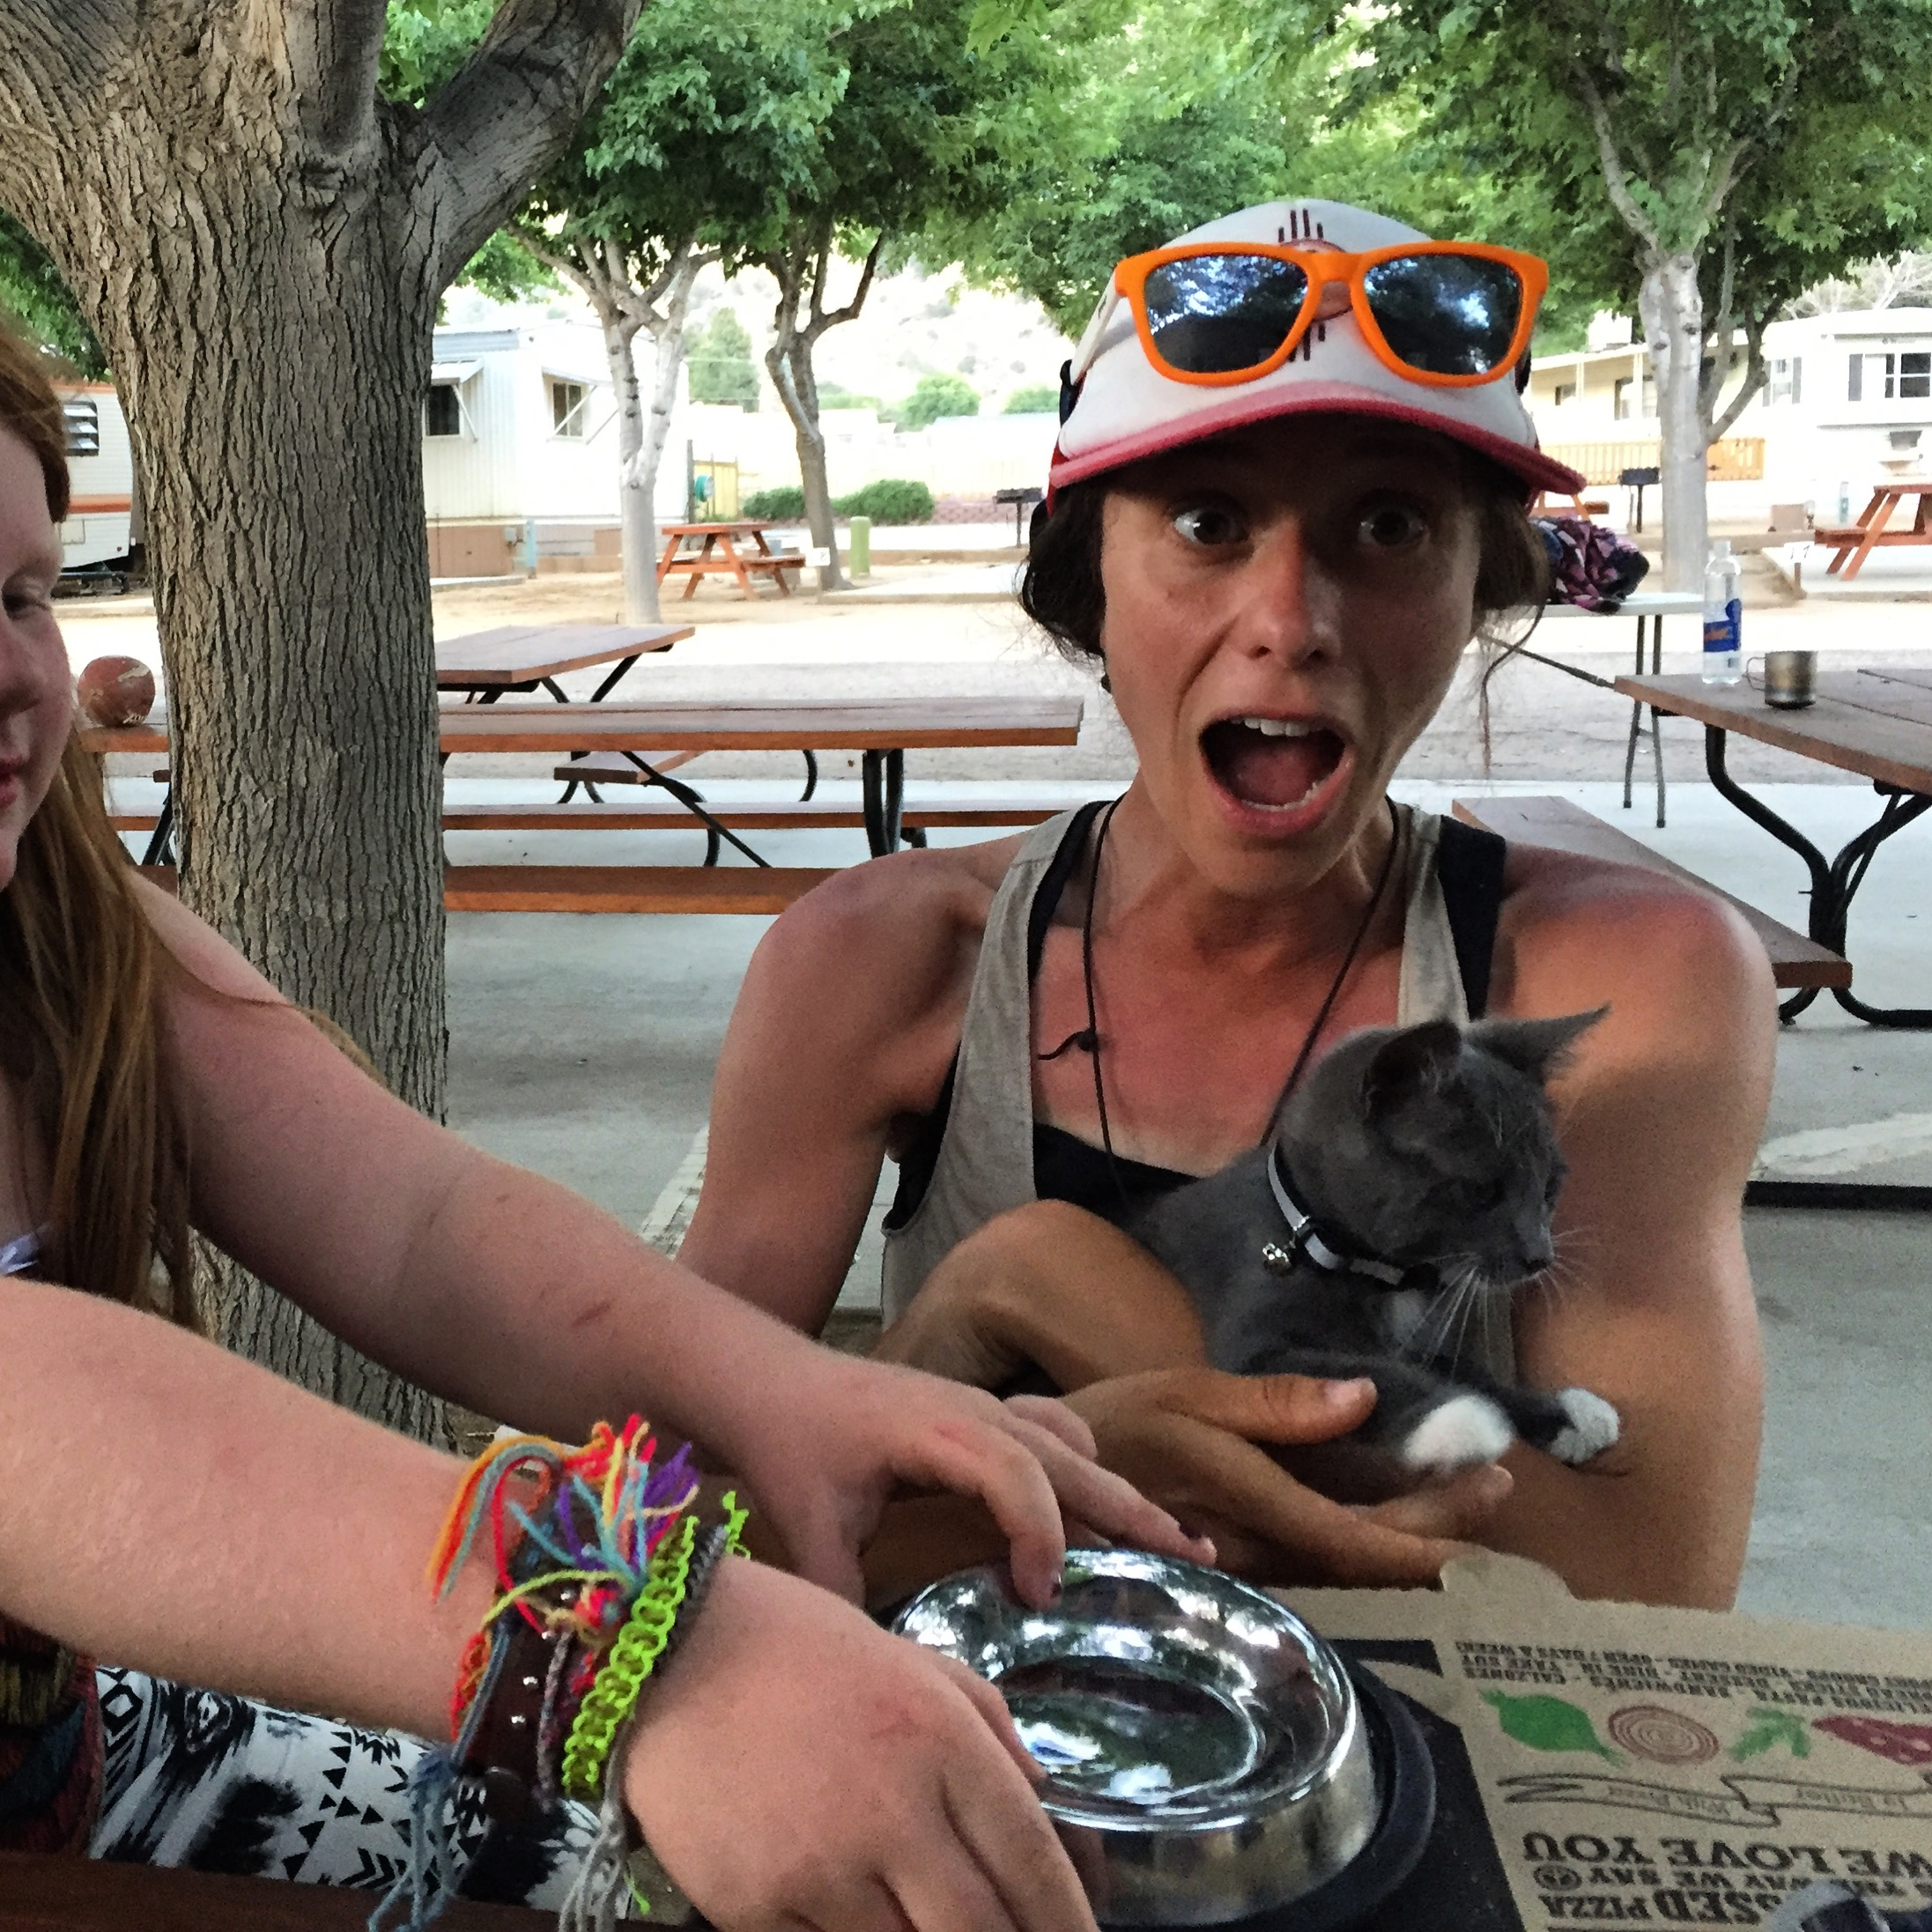 I was very excited to meet Meadow...resident kitten at the campground